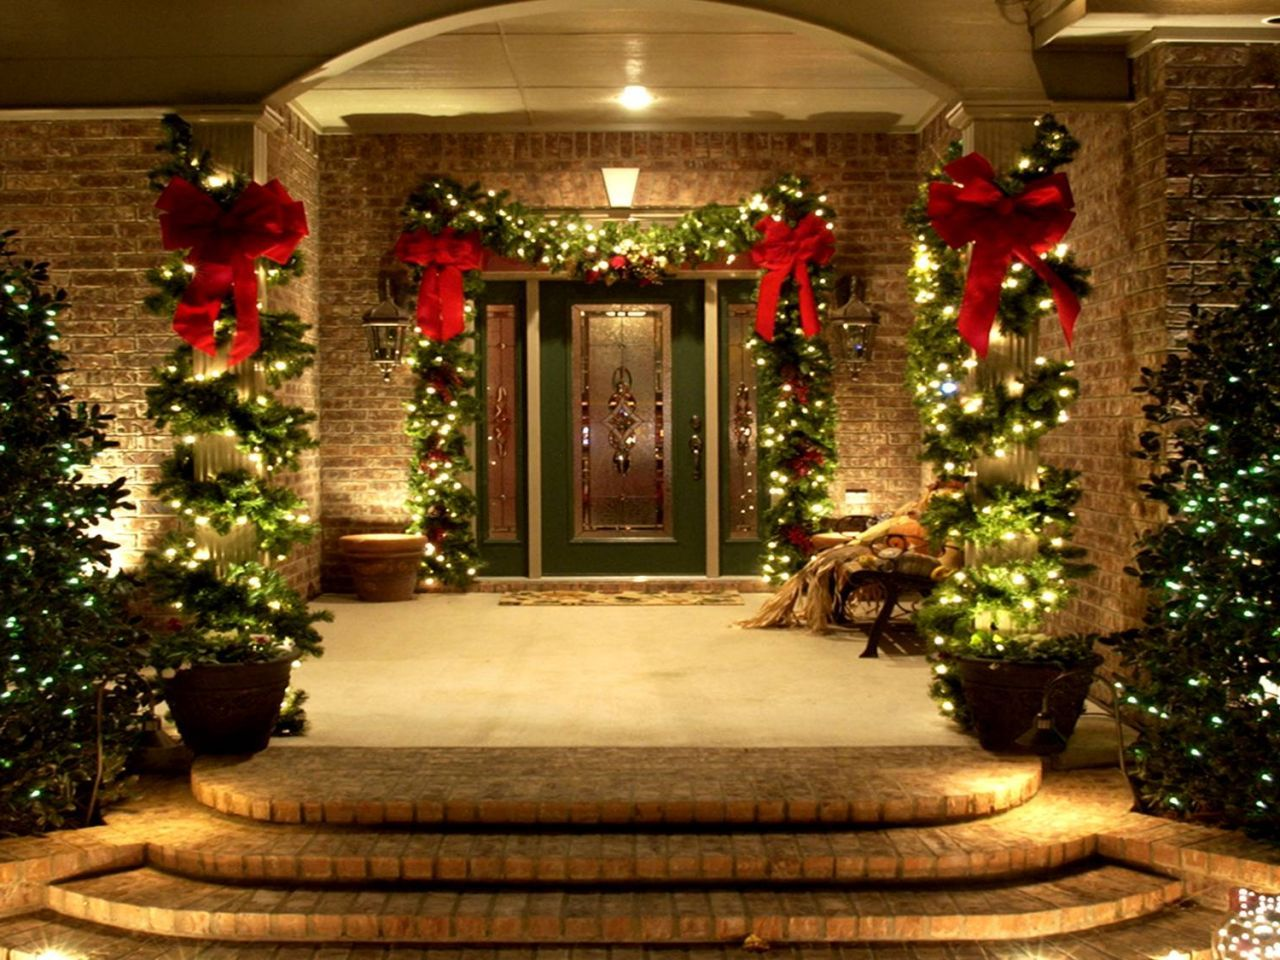 Use of lighting and decorative plants to the outdoor for for Christmas lawn decorations